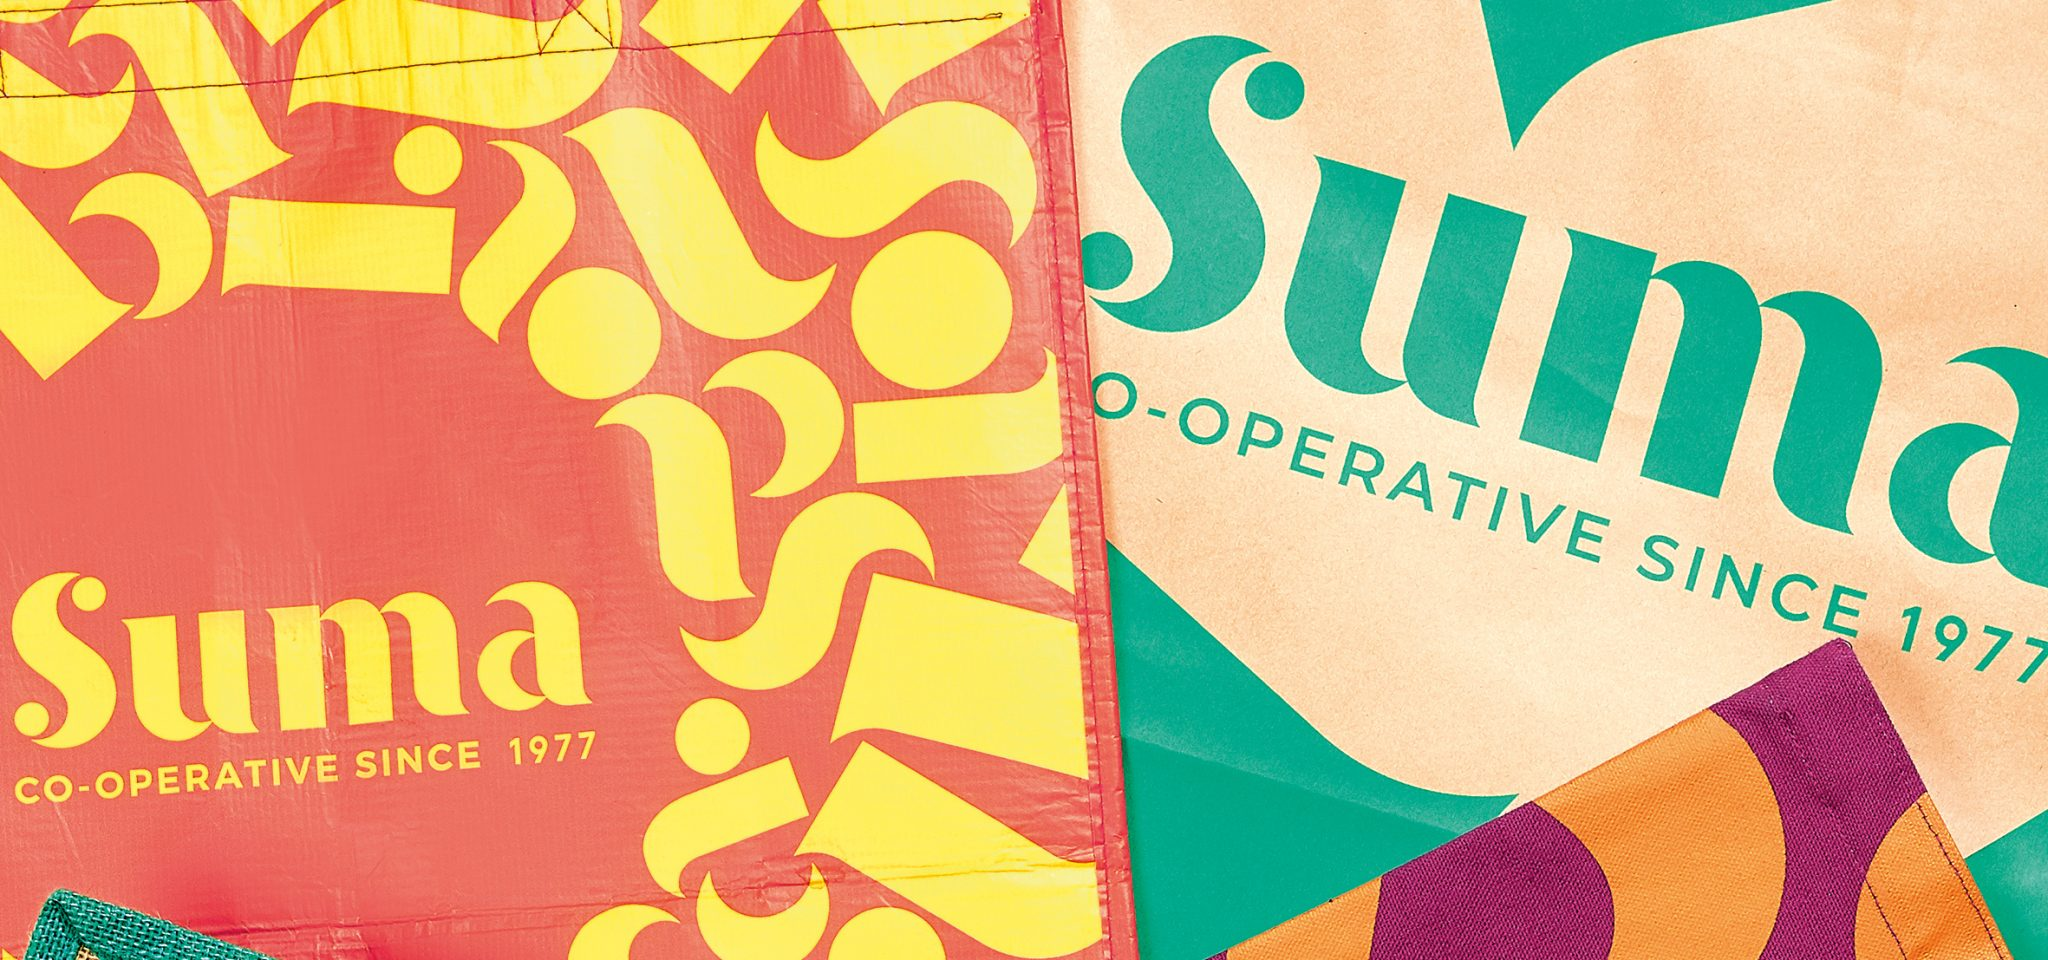 Suma Wholefoods launches new branding that emphasises its co